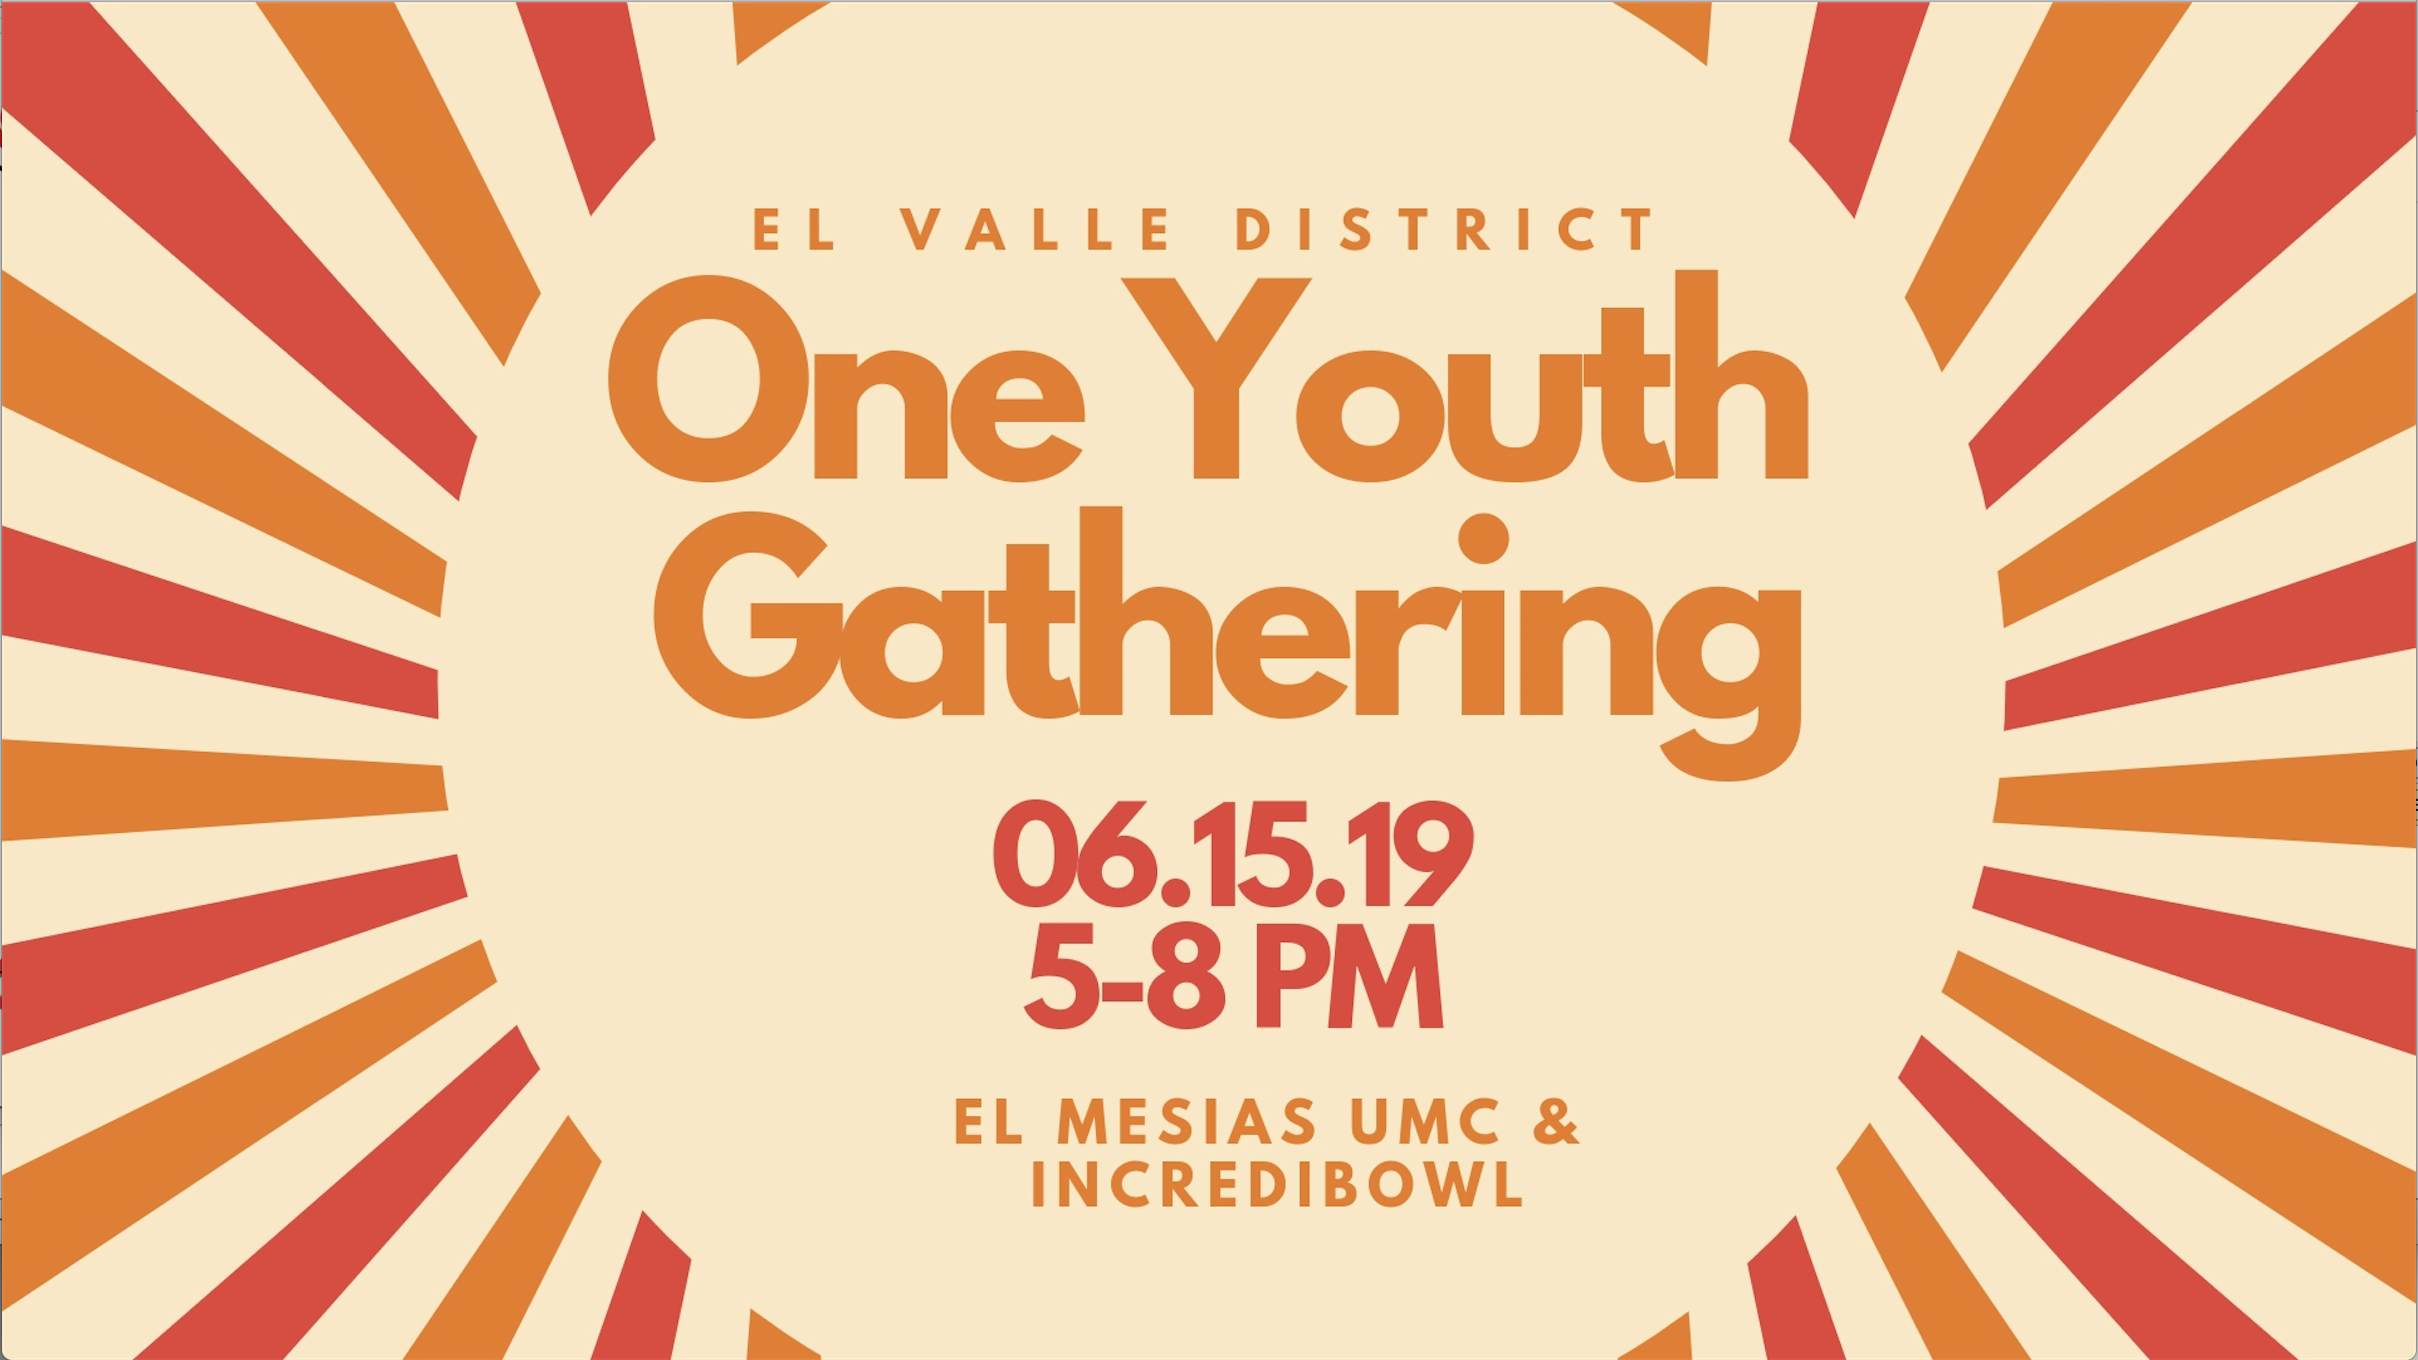 One youth gathering 2019.png